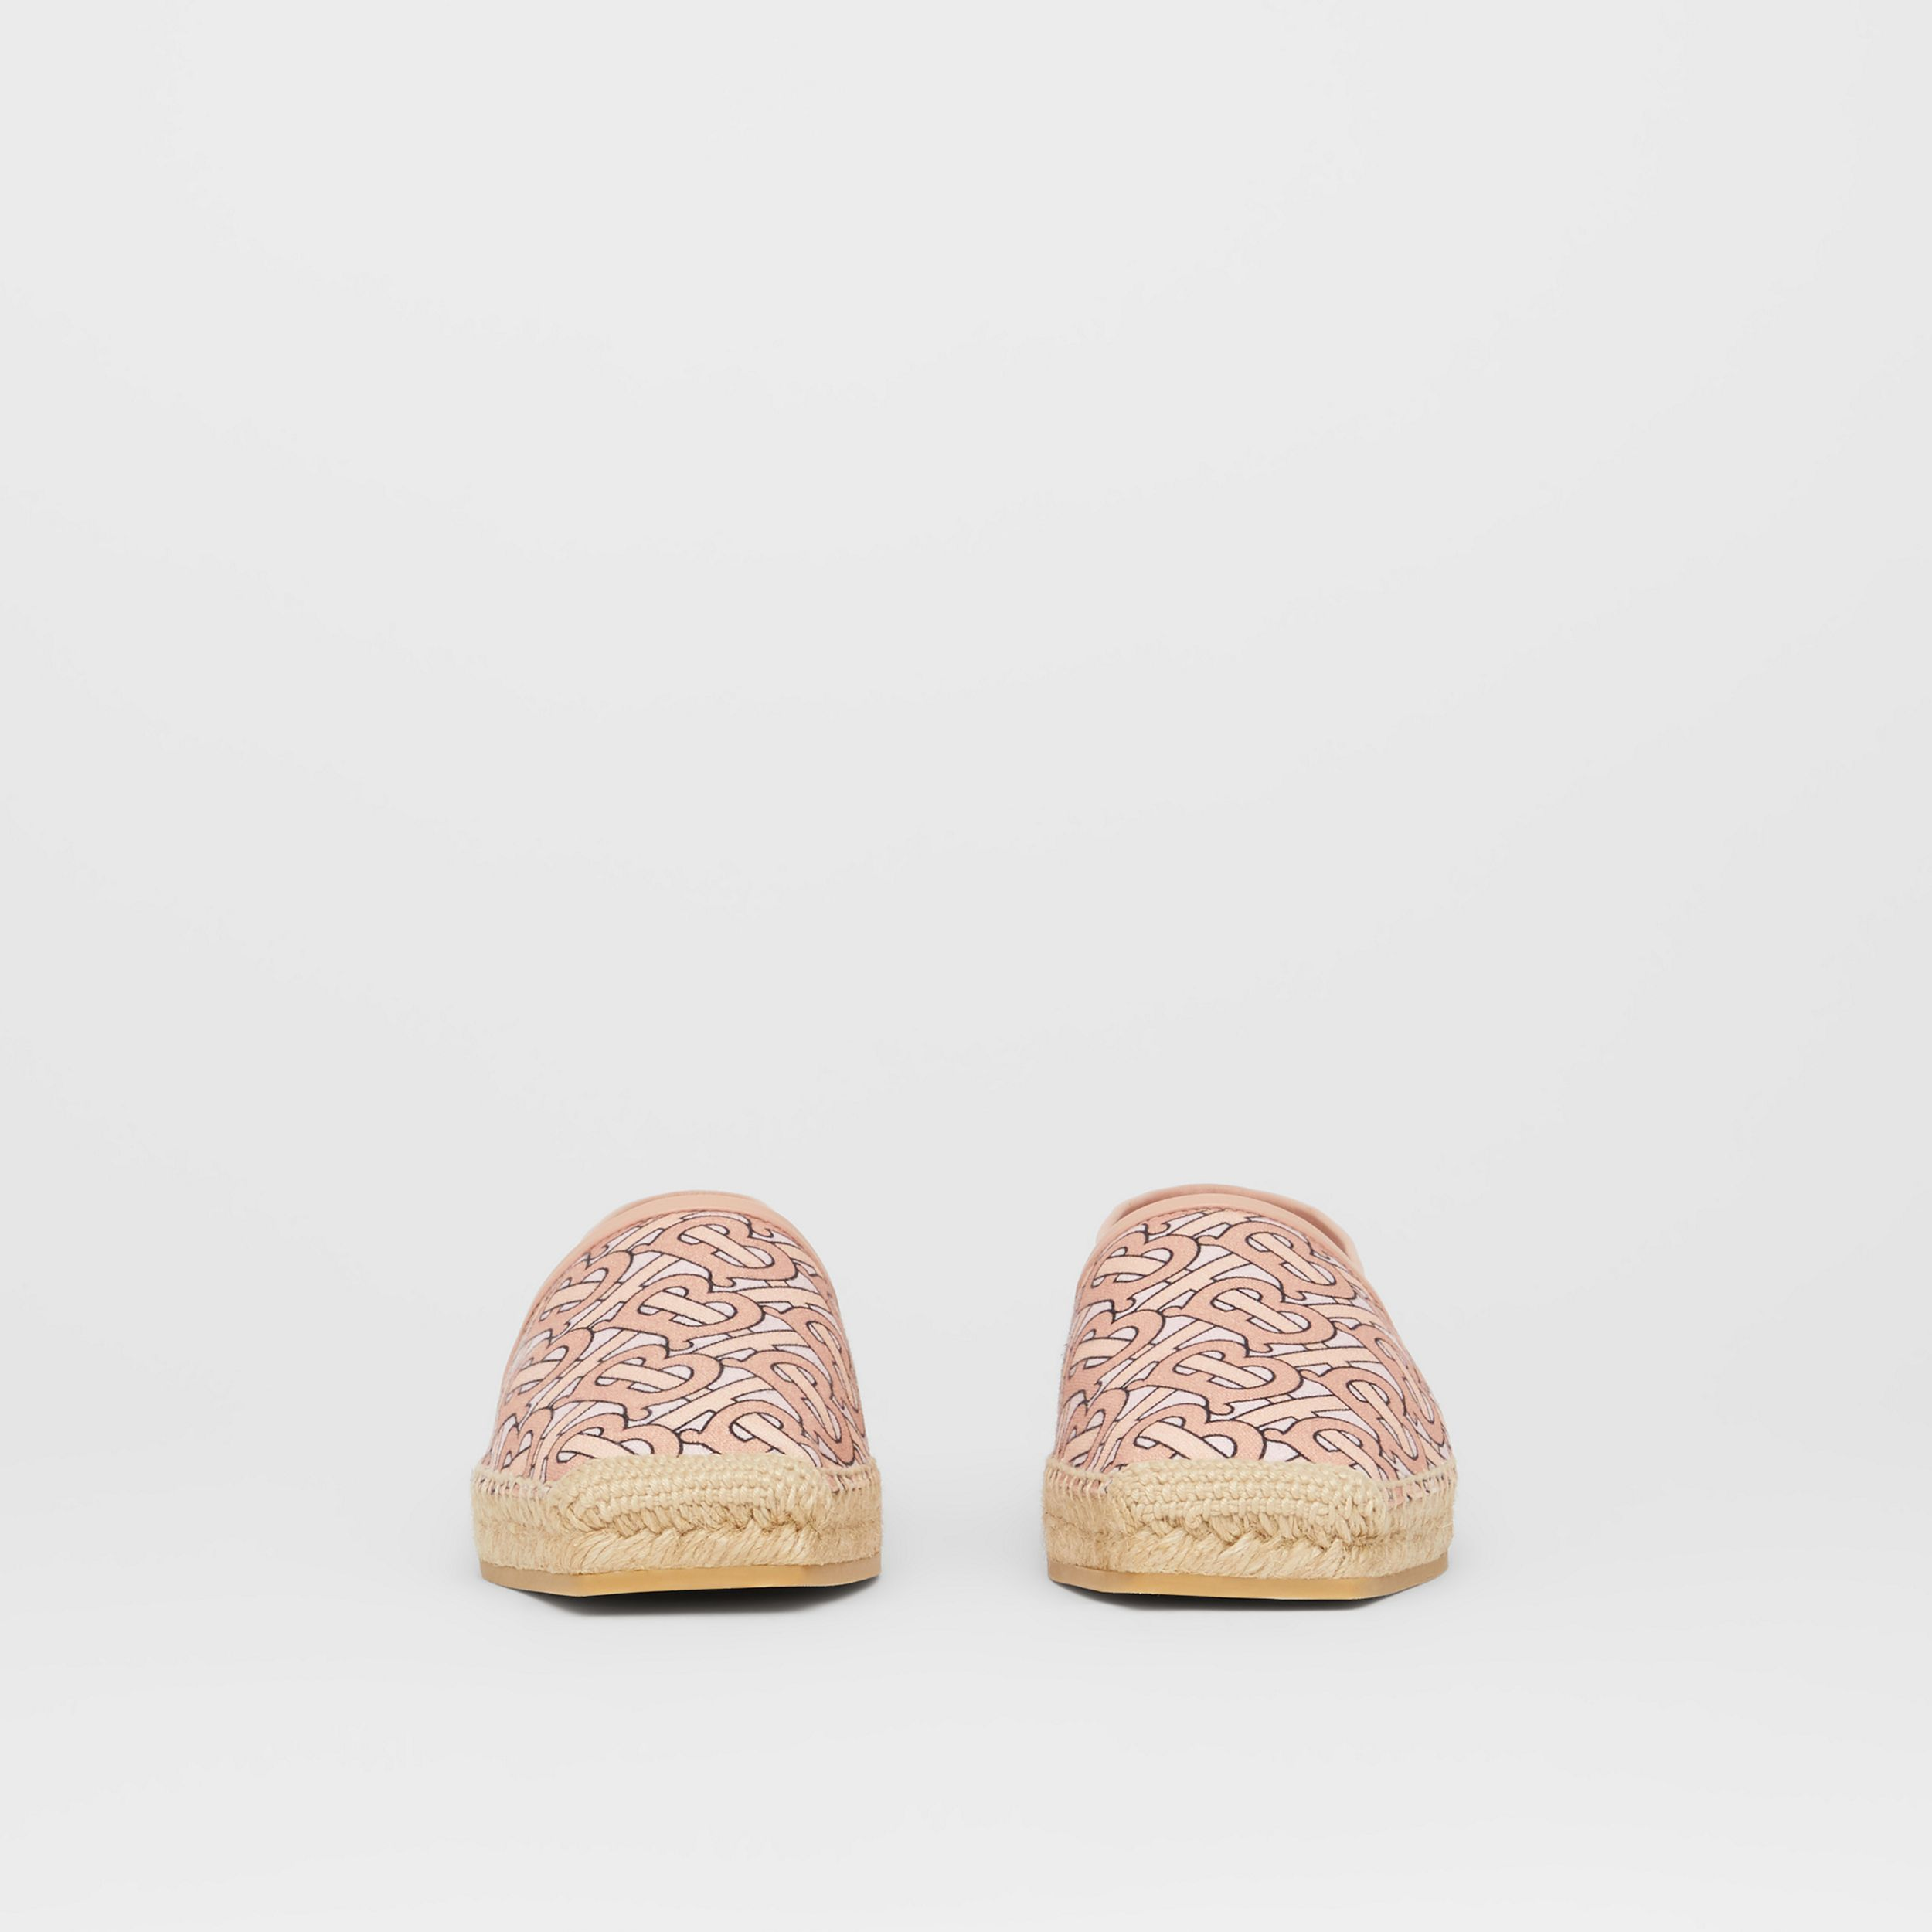 Monogram Print Cotton Canvas Espadrilles in Pale Copper Pink - Women | Burberry Canada - 3